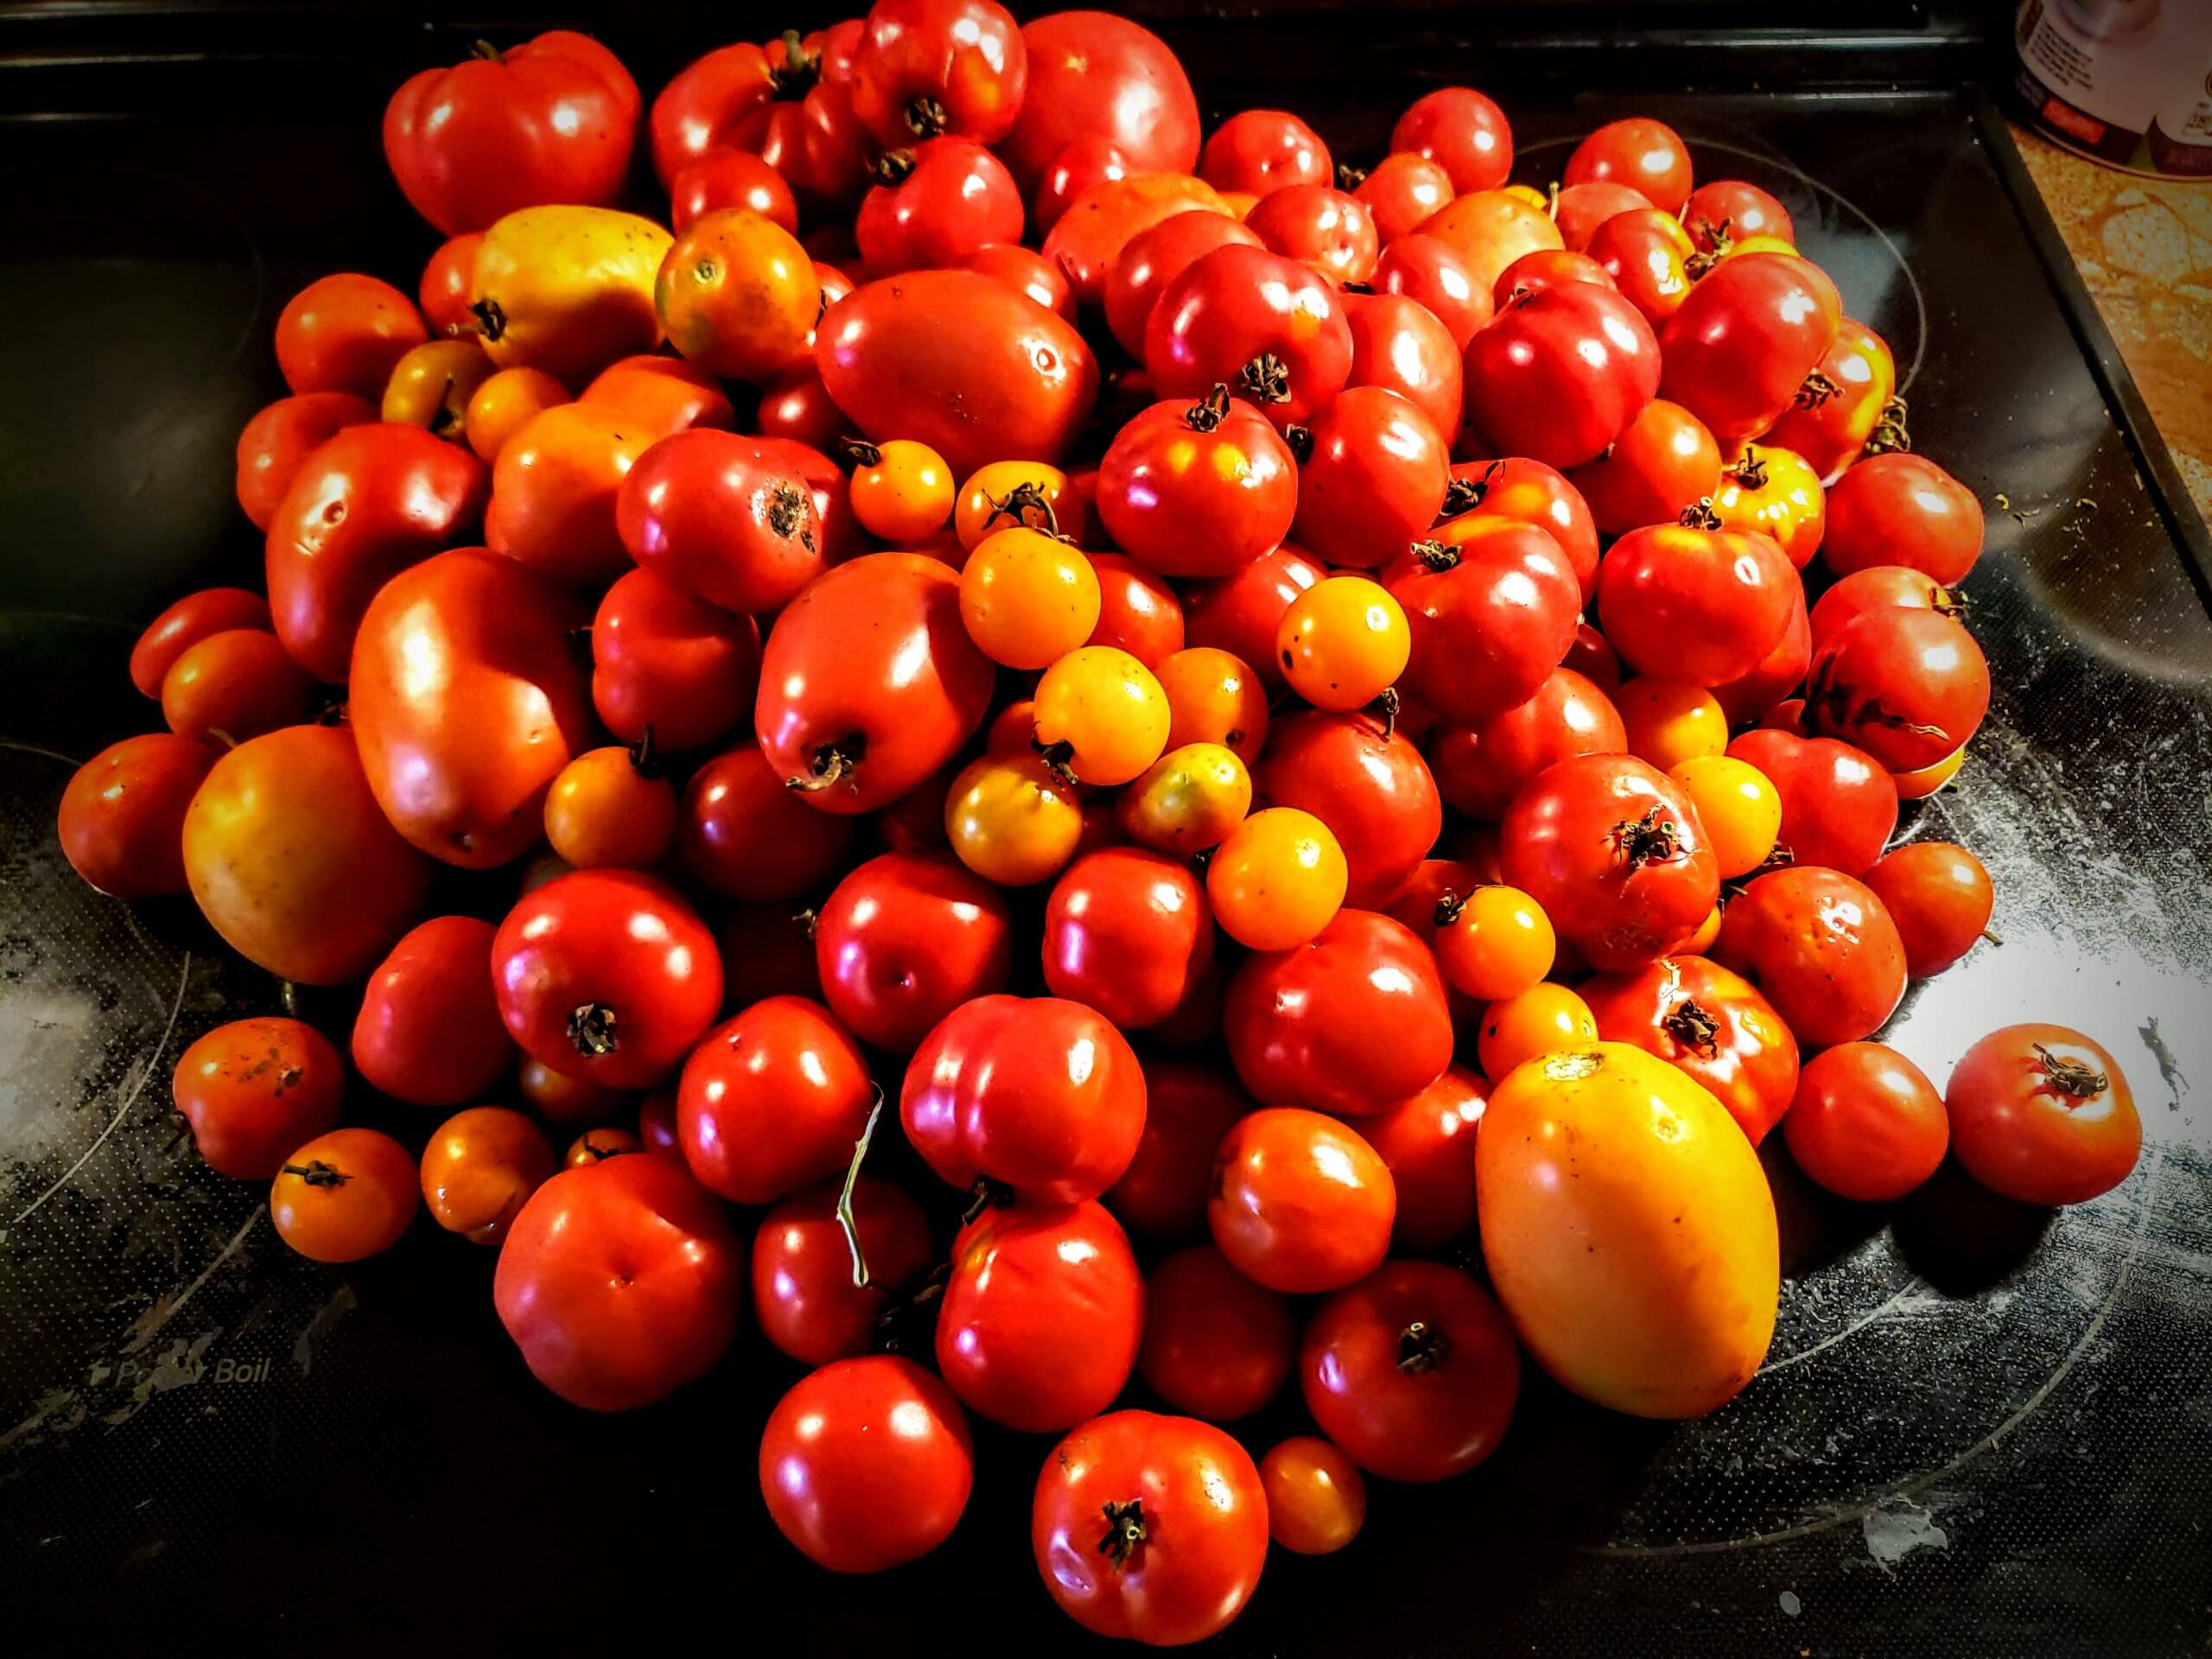 over 50 red tomatoes in a pile